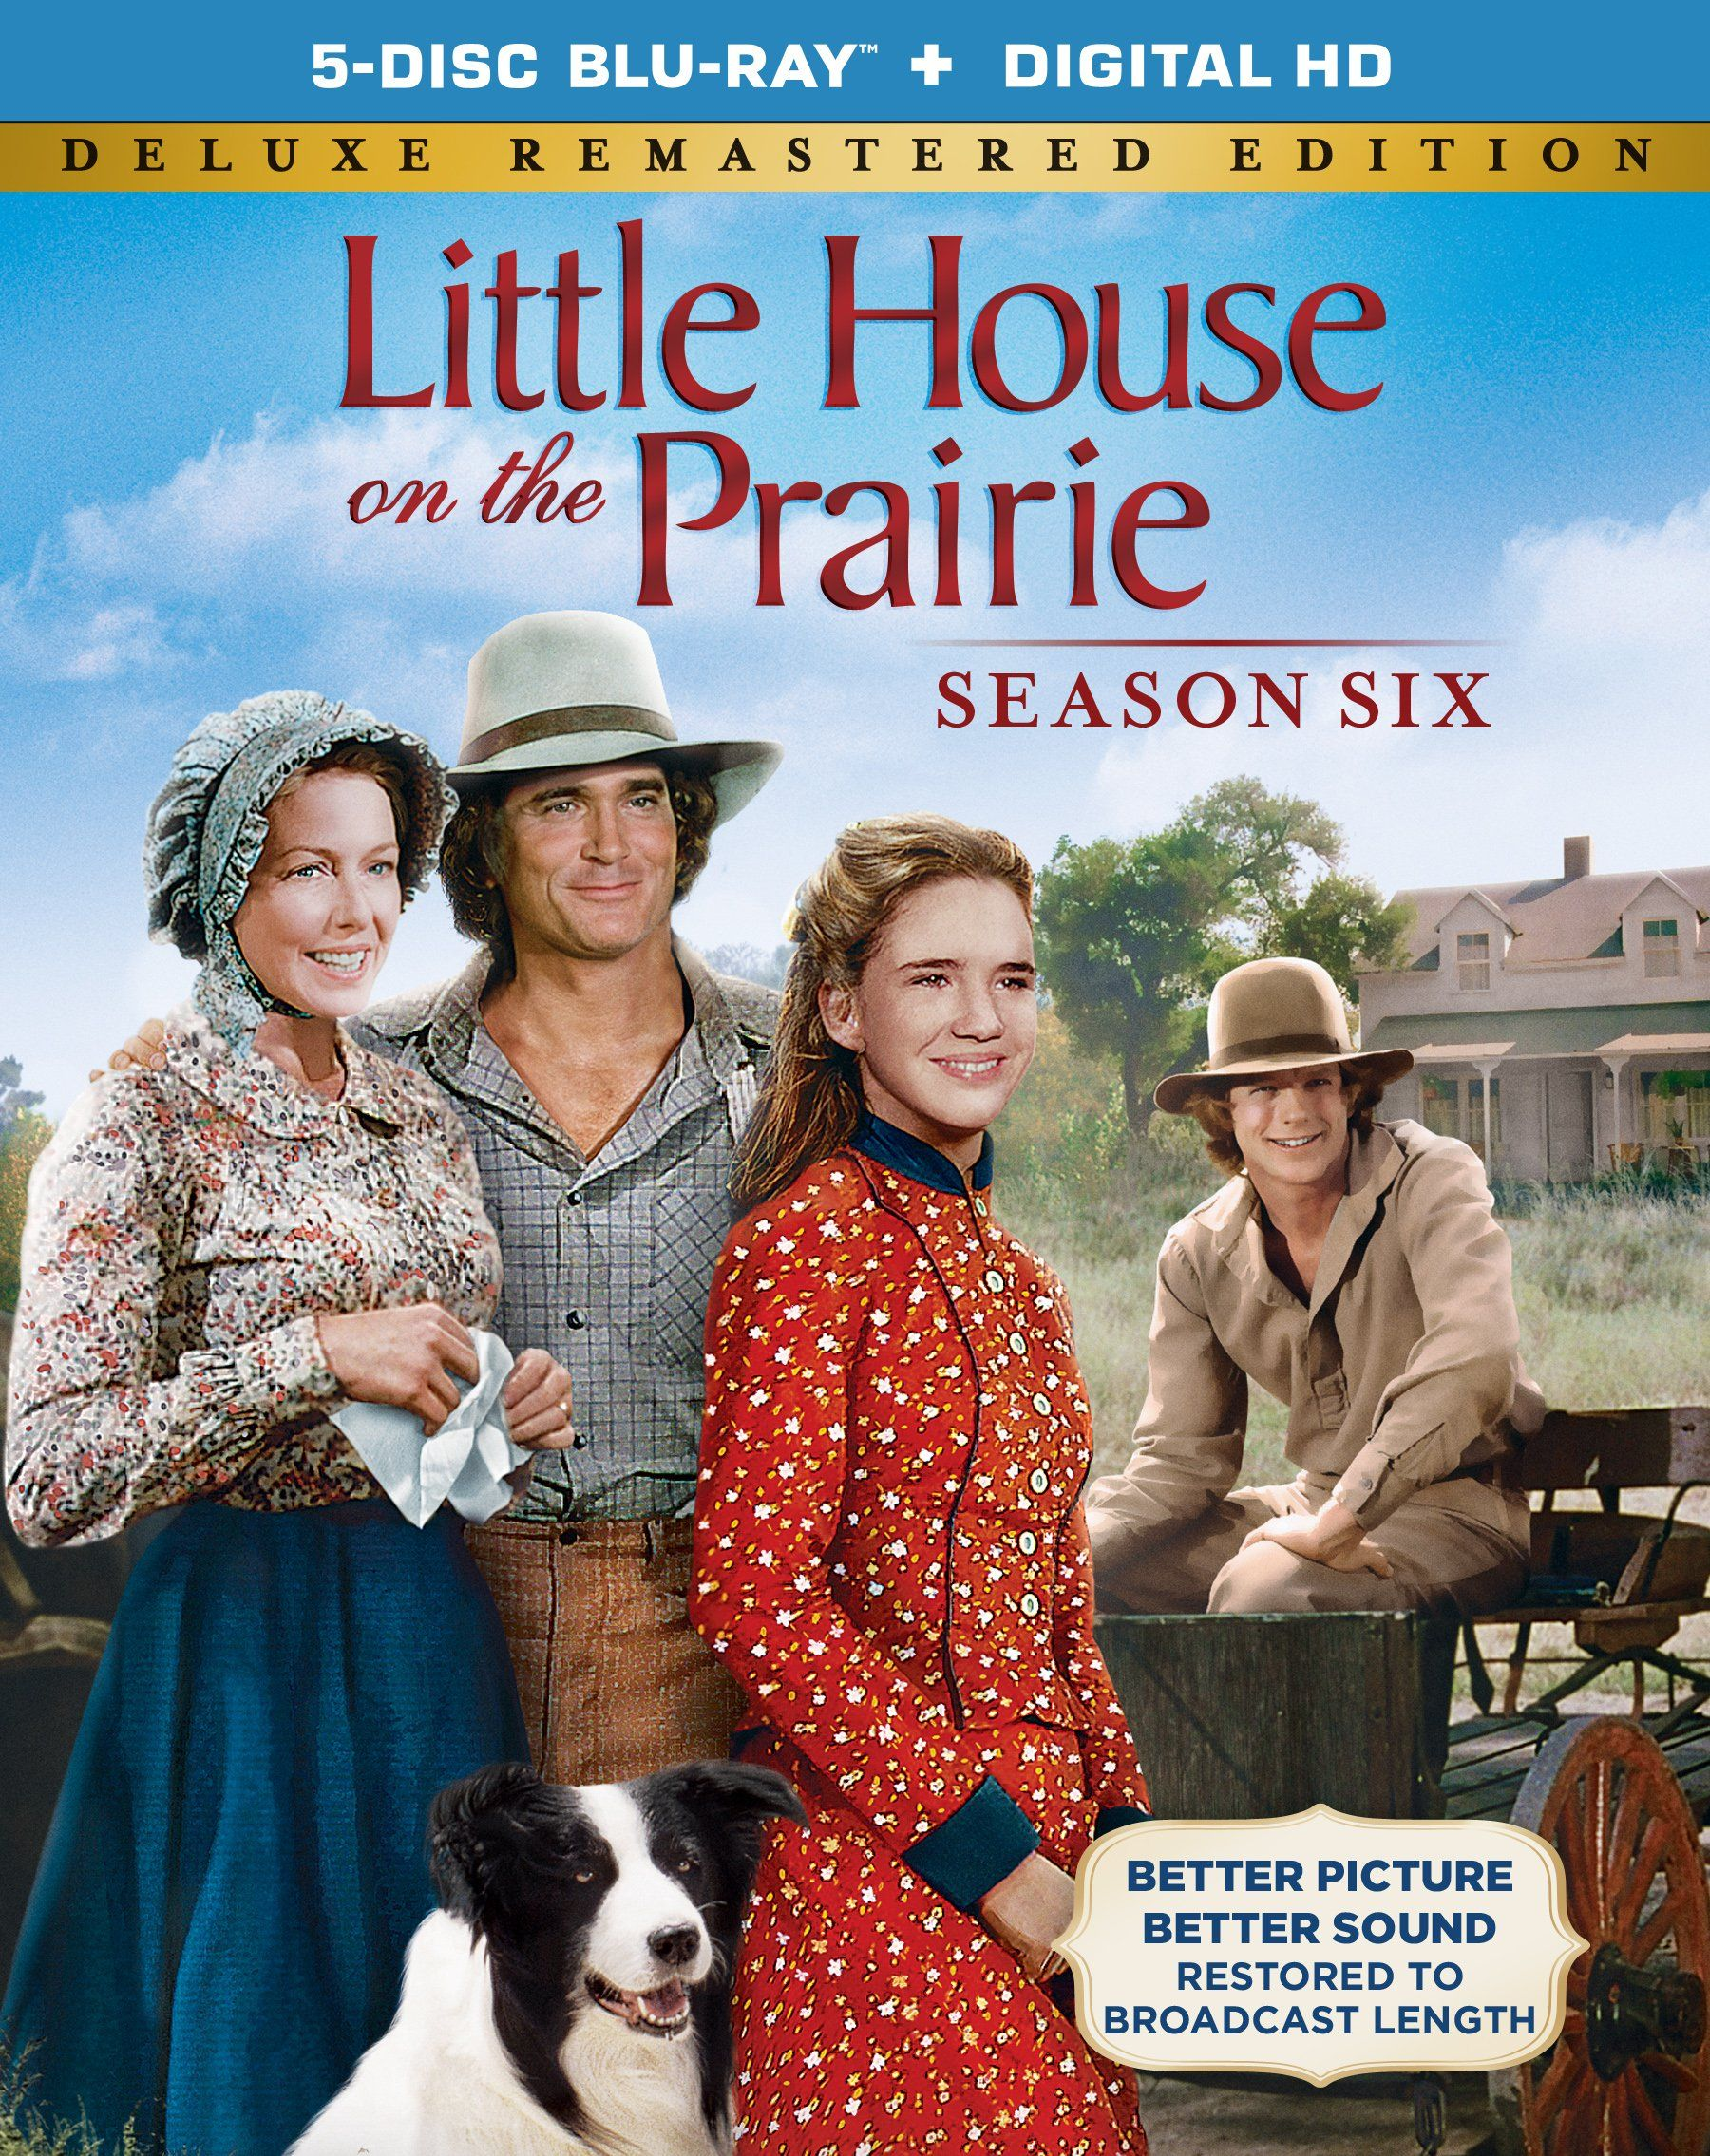 You Can Now Preorder Season 6 Of Little House On The Prairie On Blu